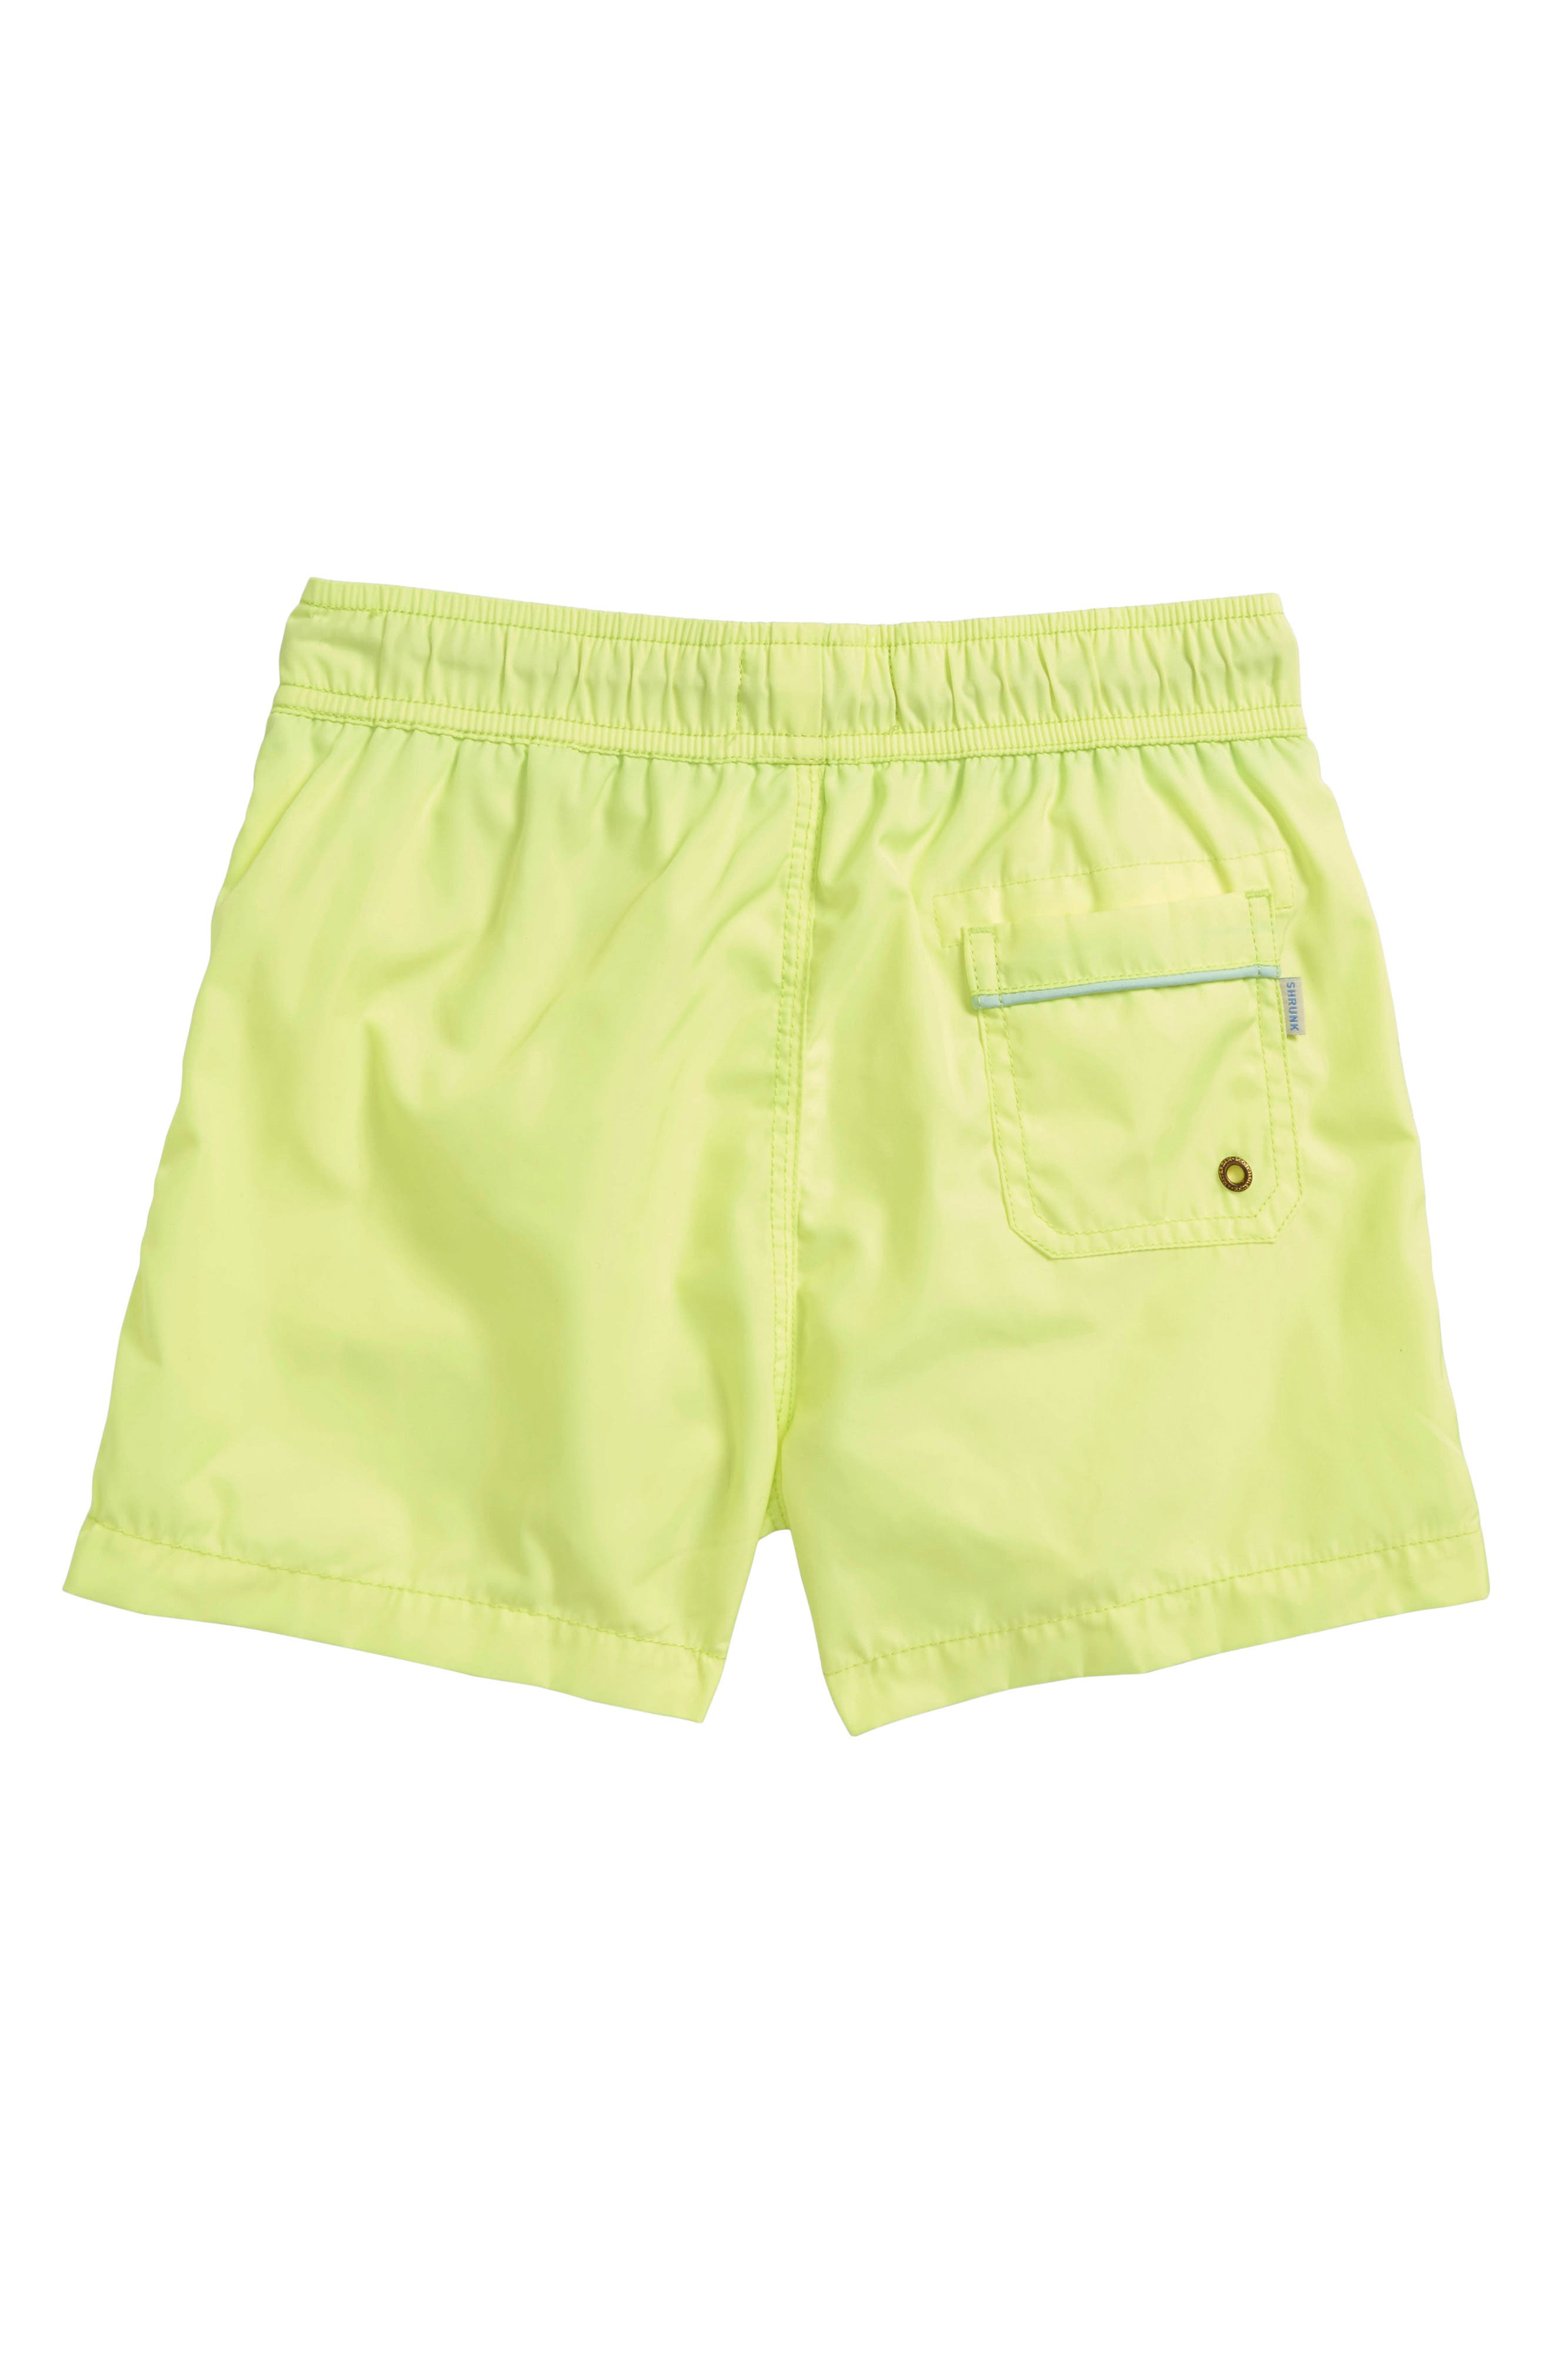 Swim Trunks,                             Alternate thumbnail 2, color,                             Citrine